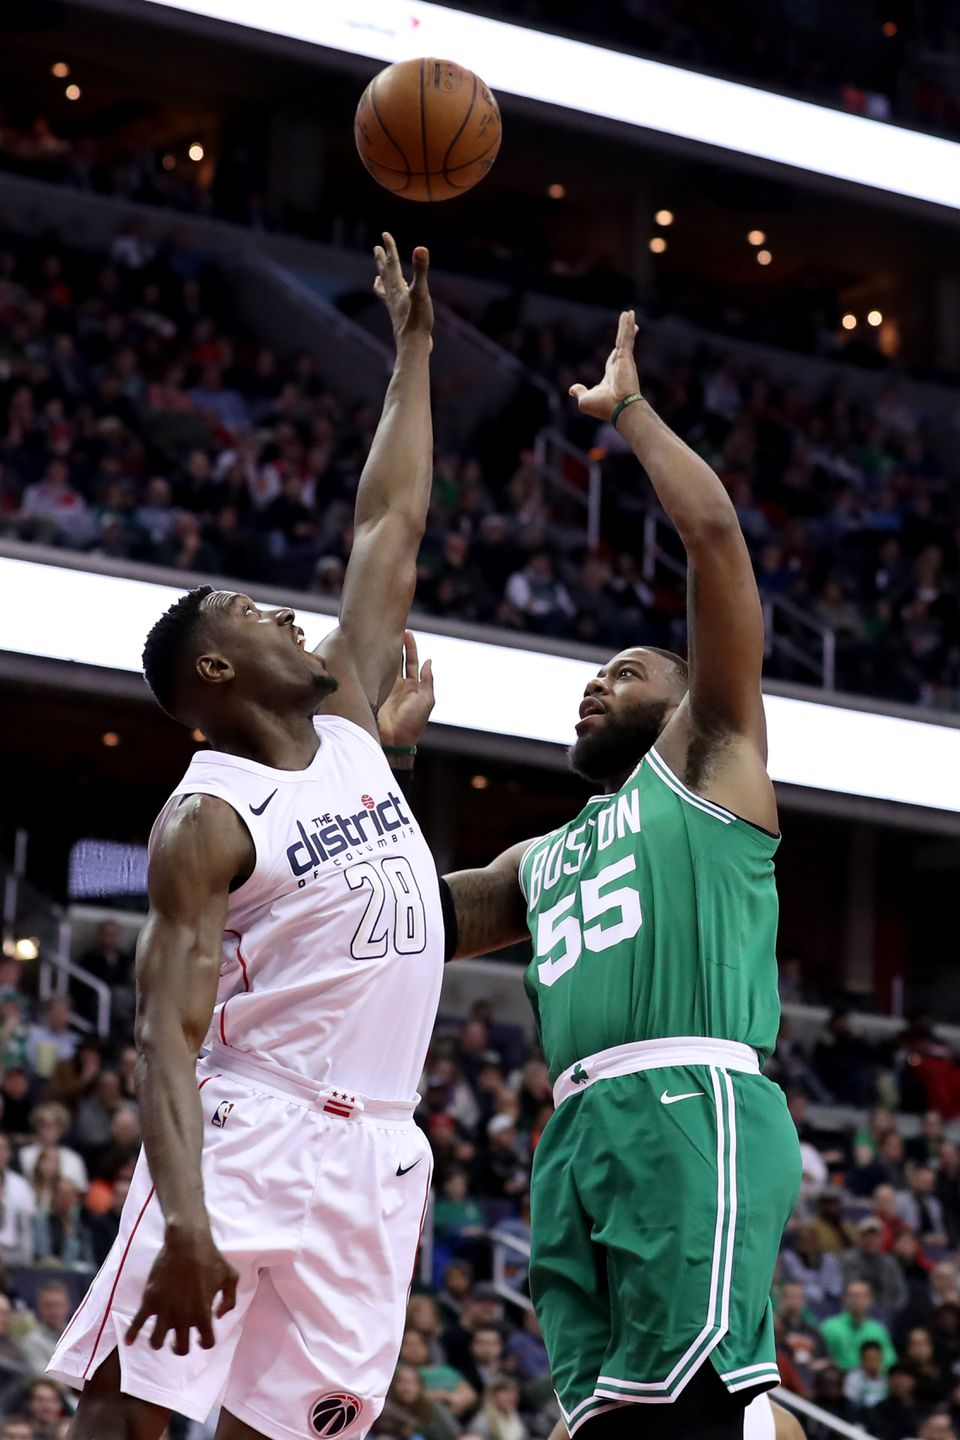 Greg Monroe, the Celtics' latest addition, puts up a shot over Washington's Ian Mahinmi.